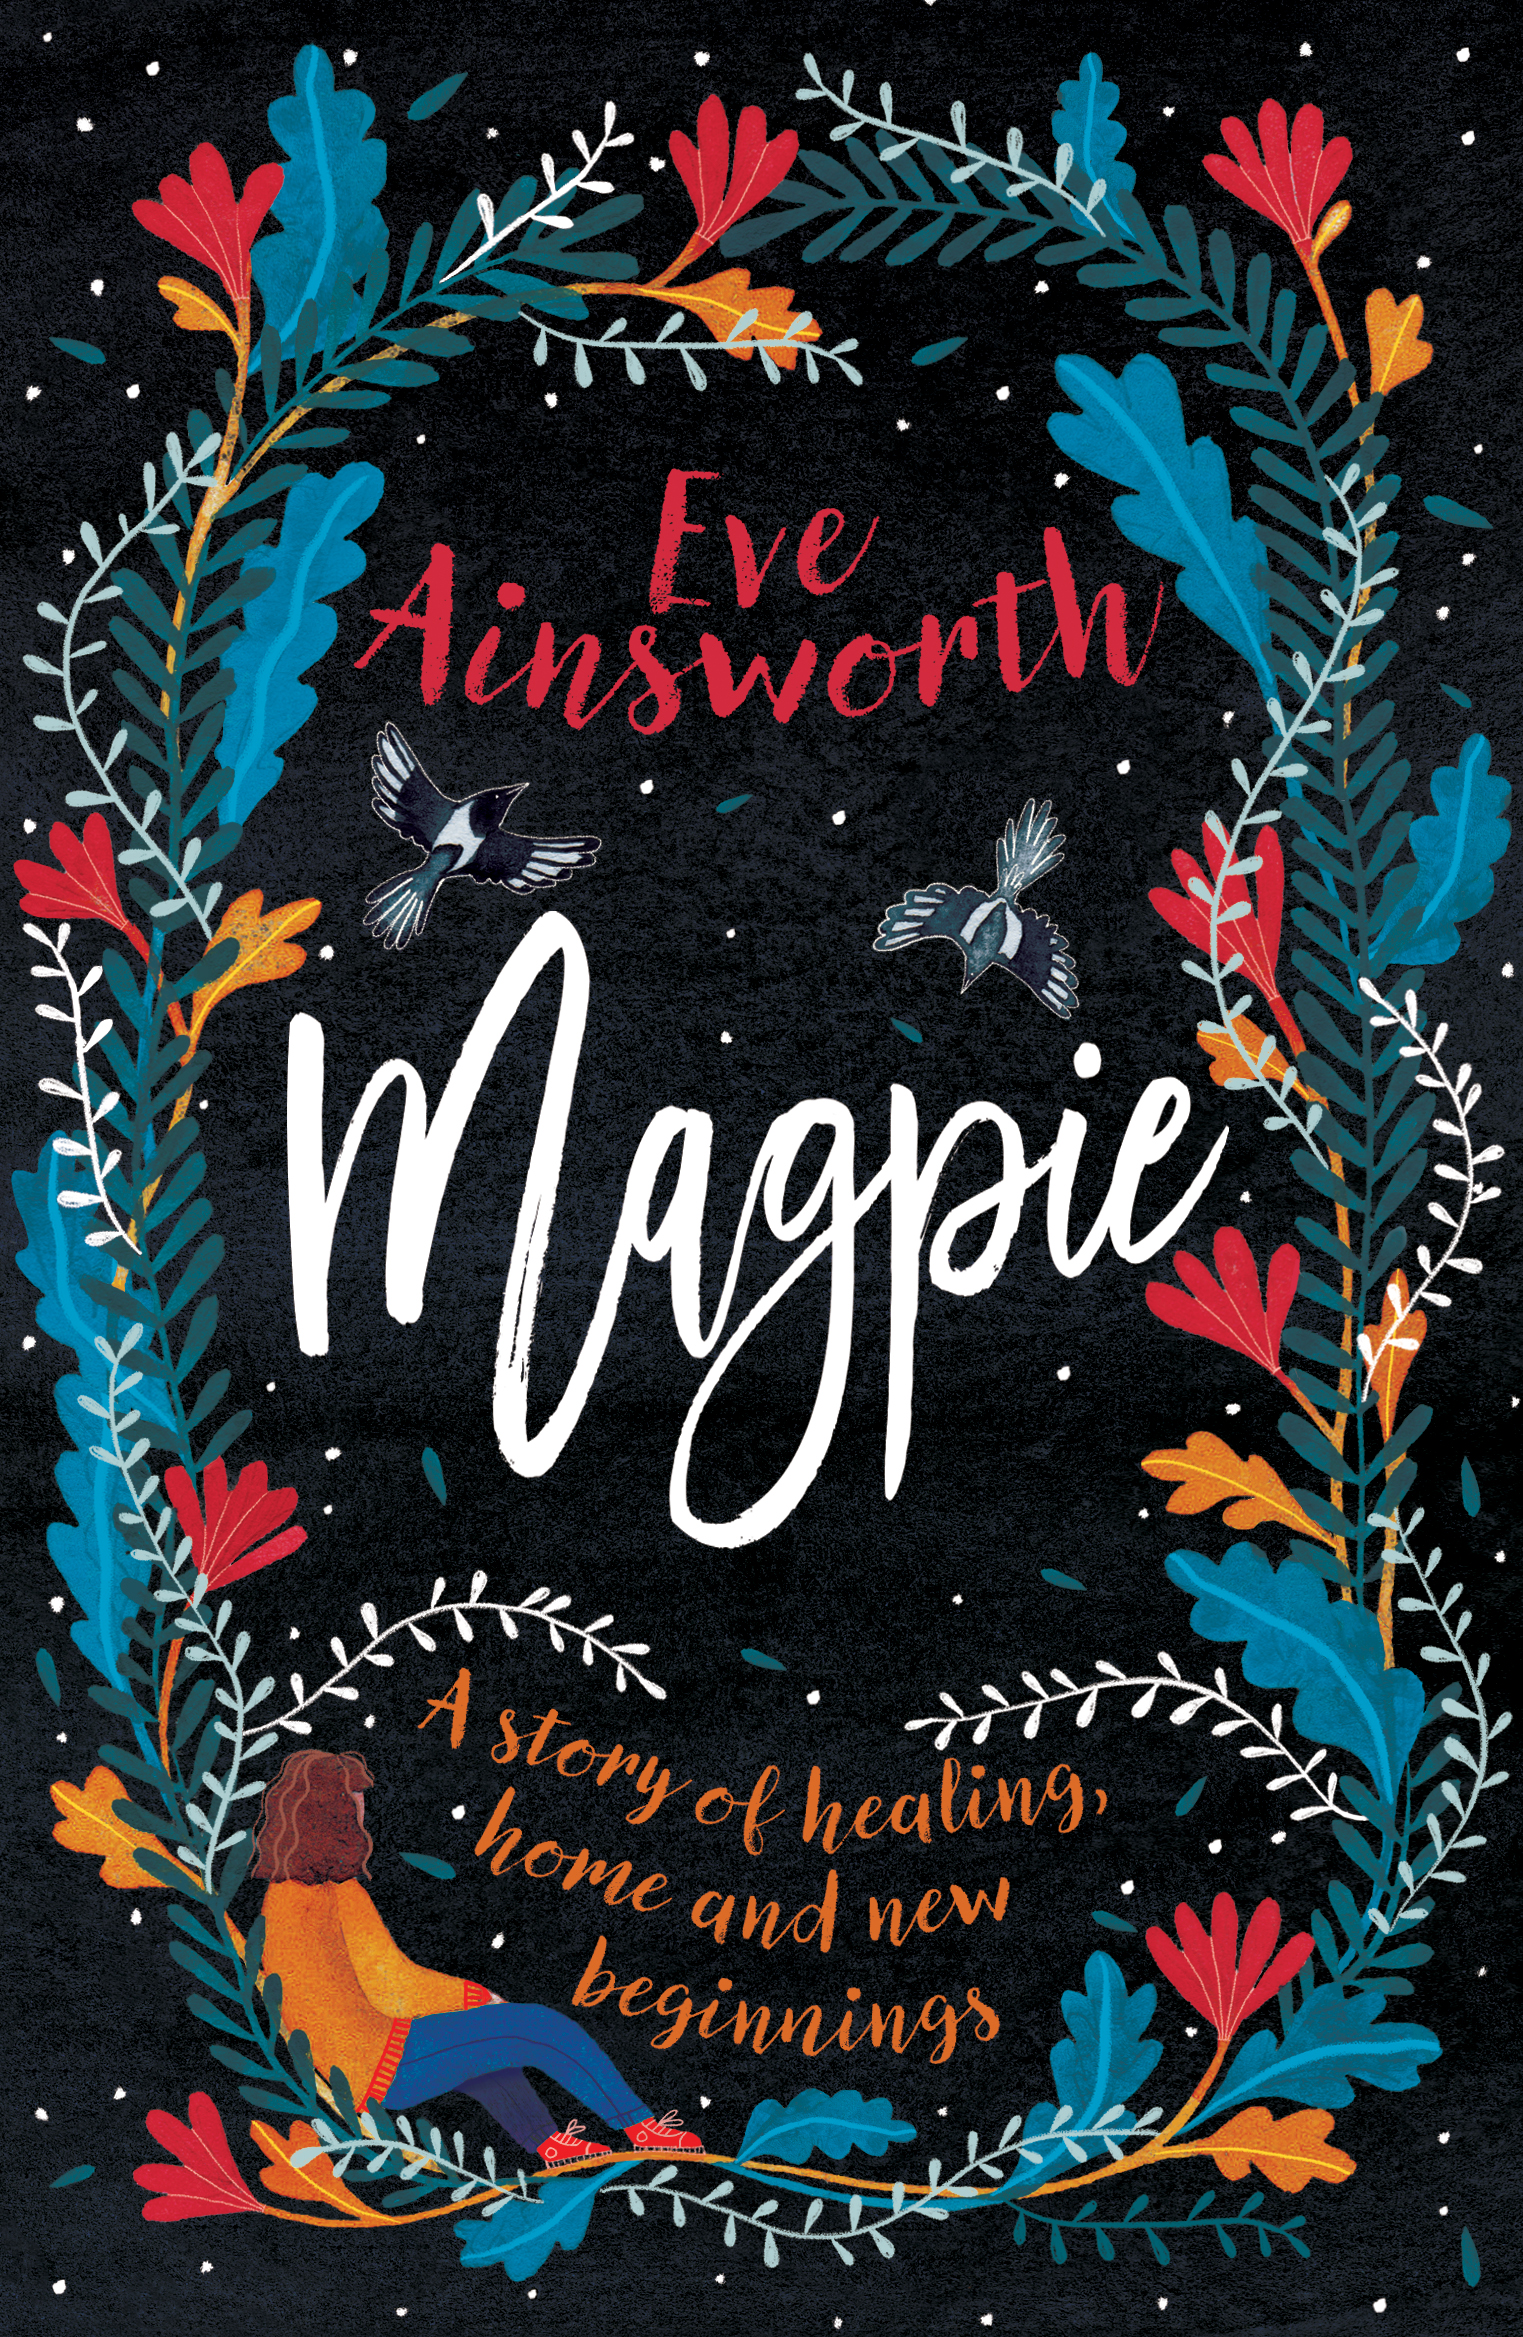 Photograph of the book cover of Magpie